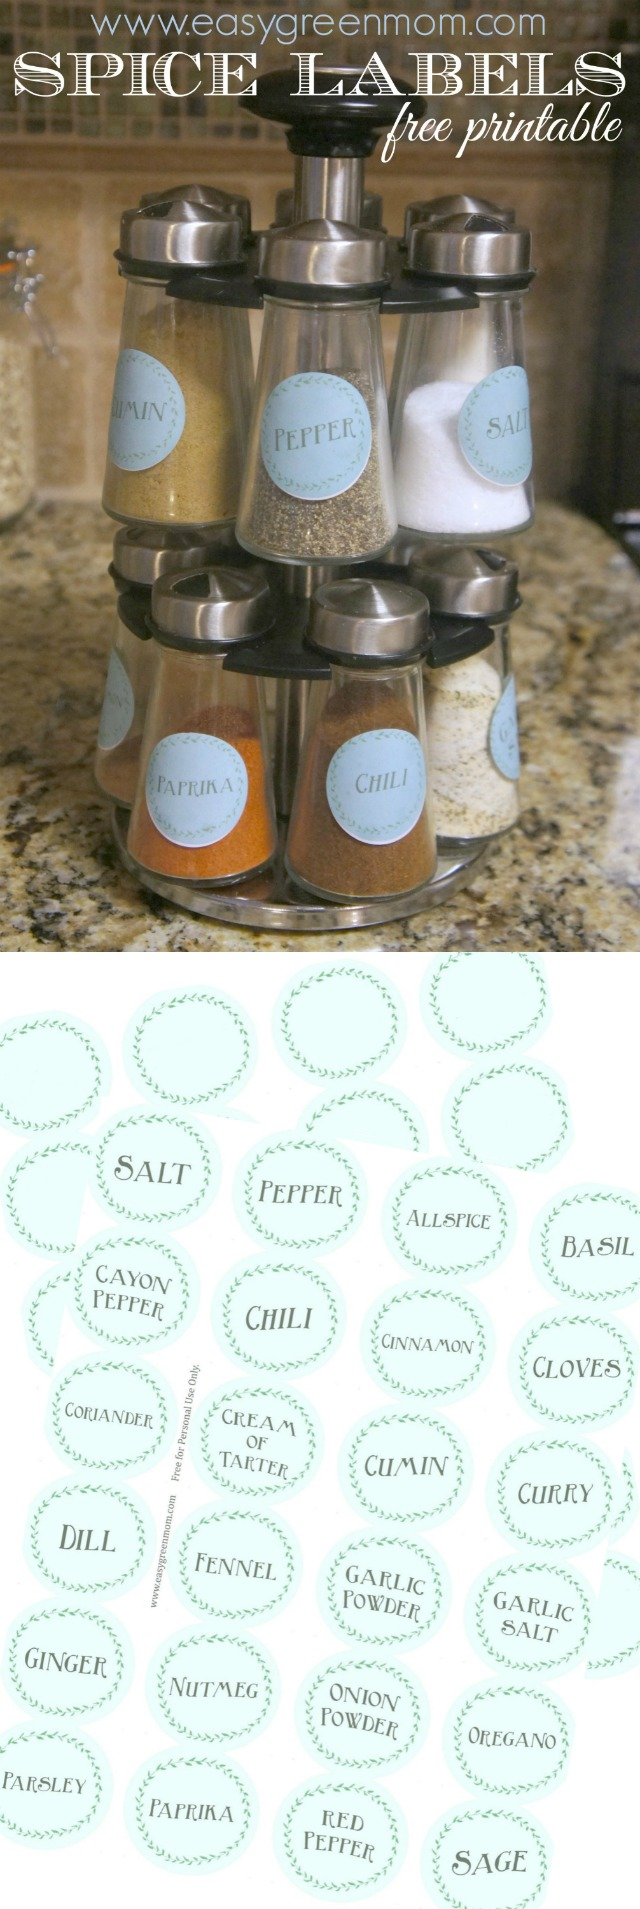 Spice Labels free printable from rays of bliss